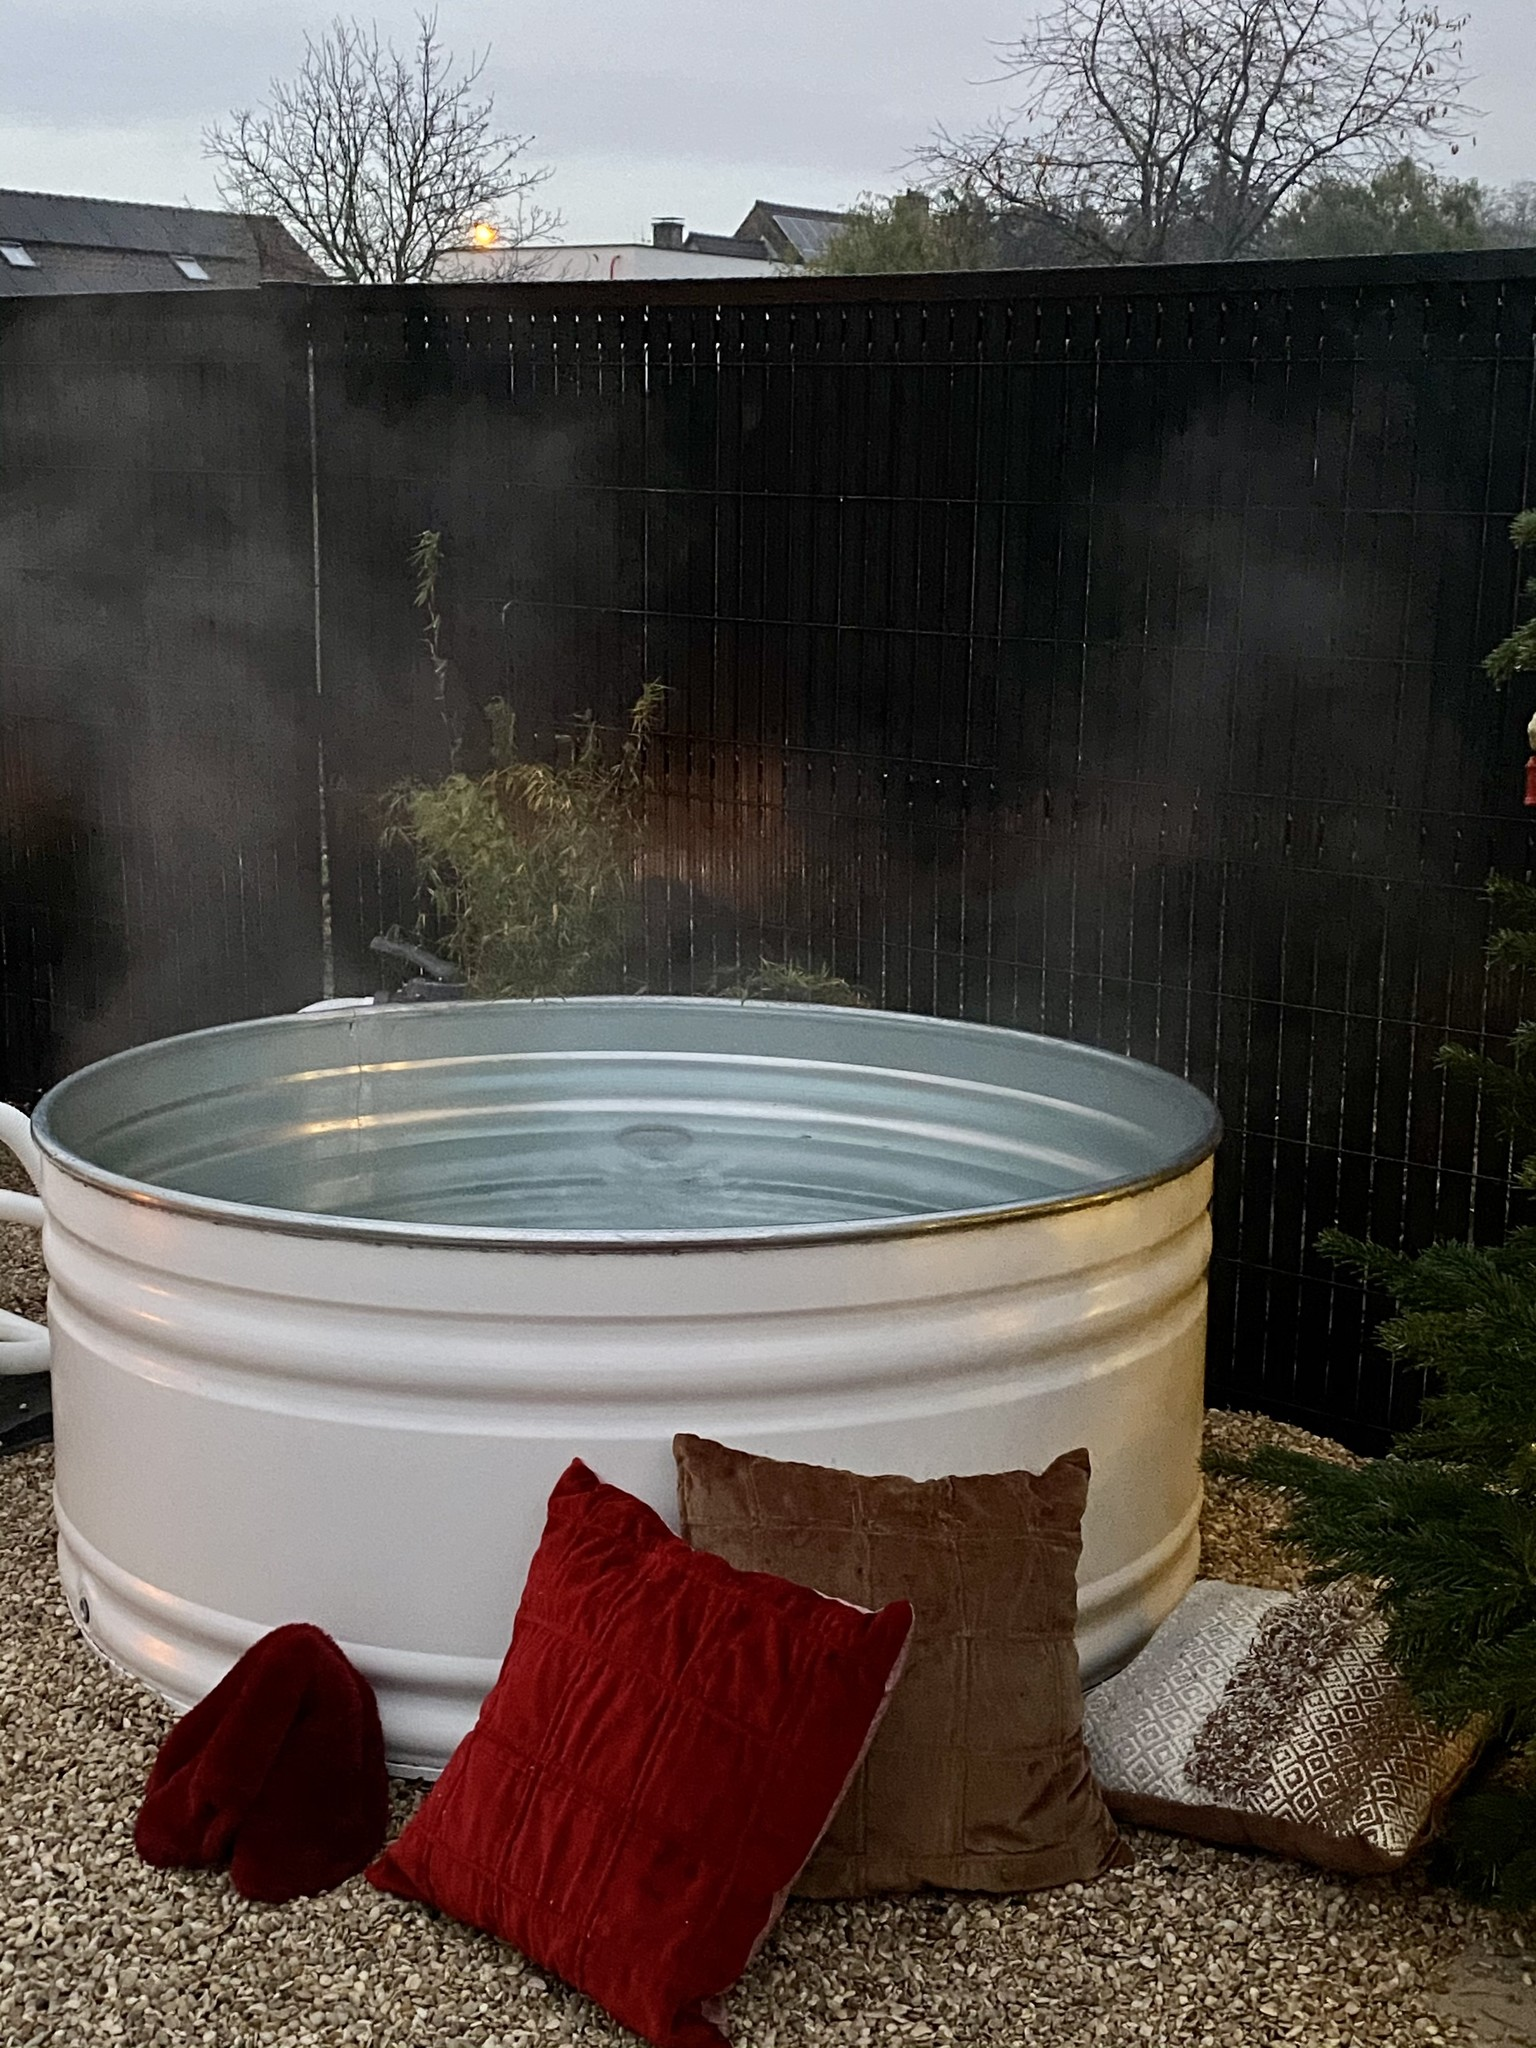 Tankkd hot tub paque ronde-7